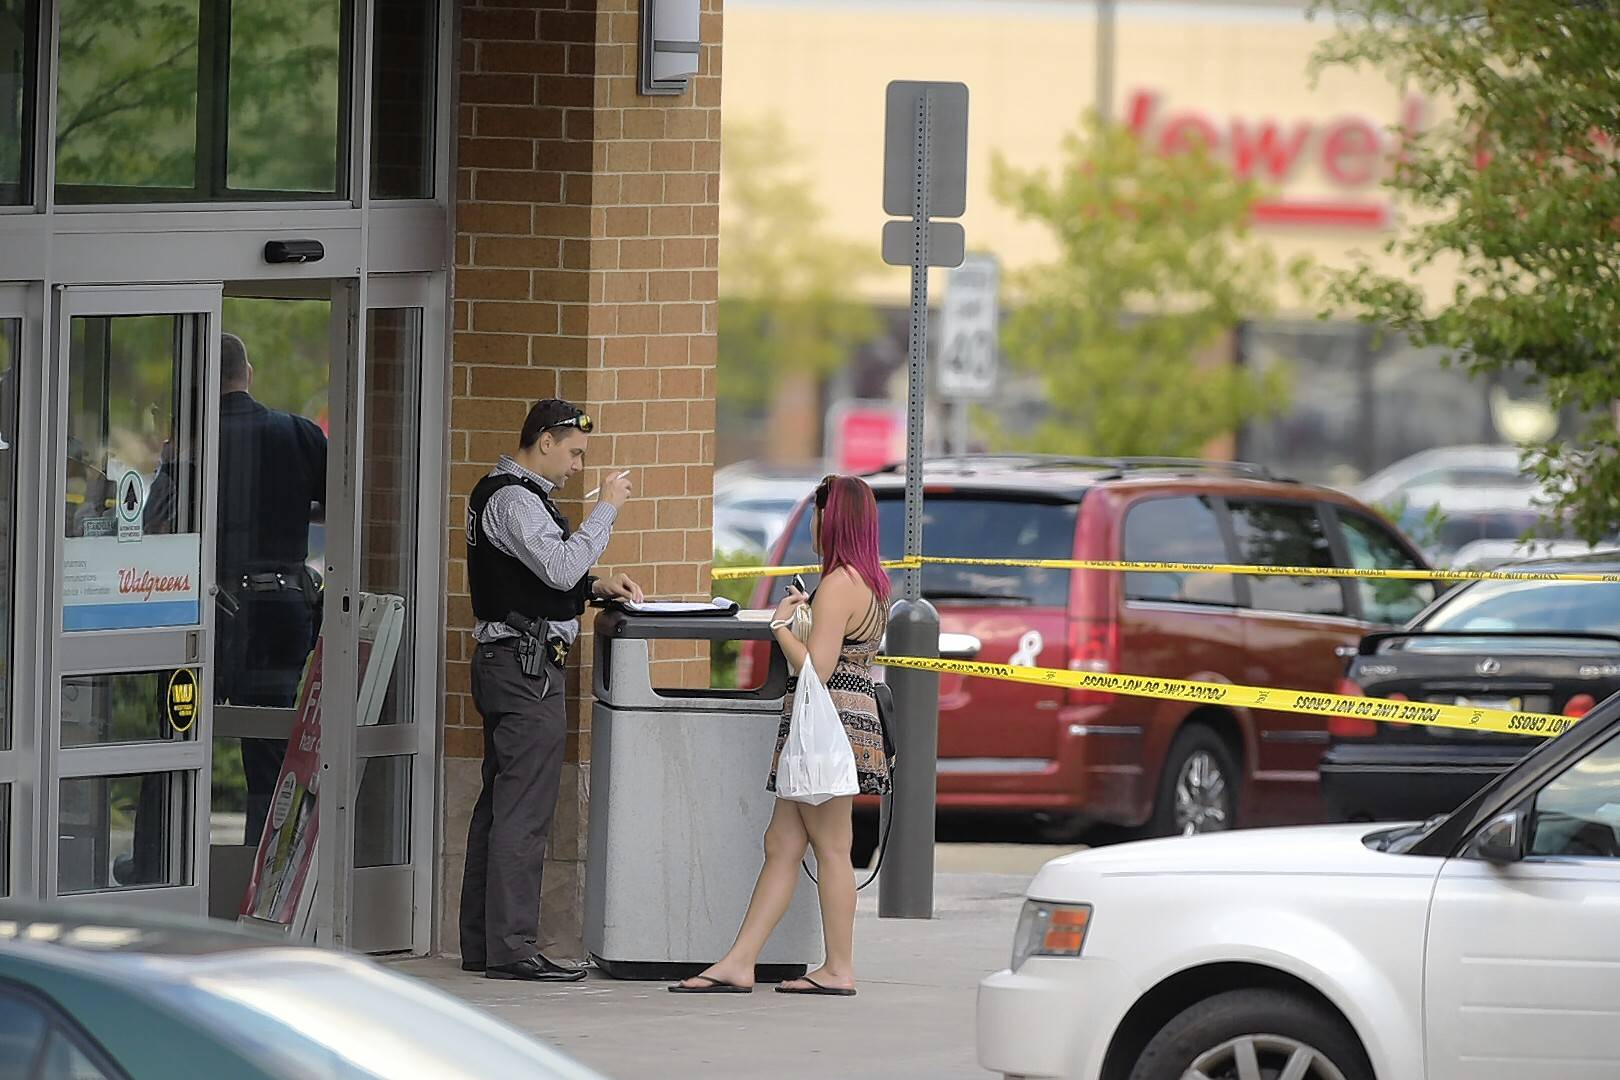 Investigators worked the scene of a shooting Monday in the parking lot off Roselle and Wise roads in Schaumburg.